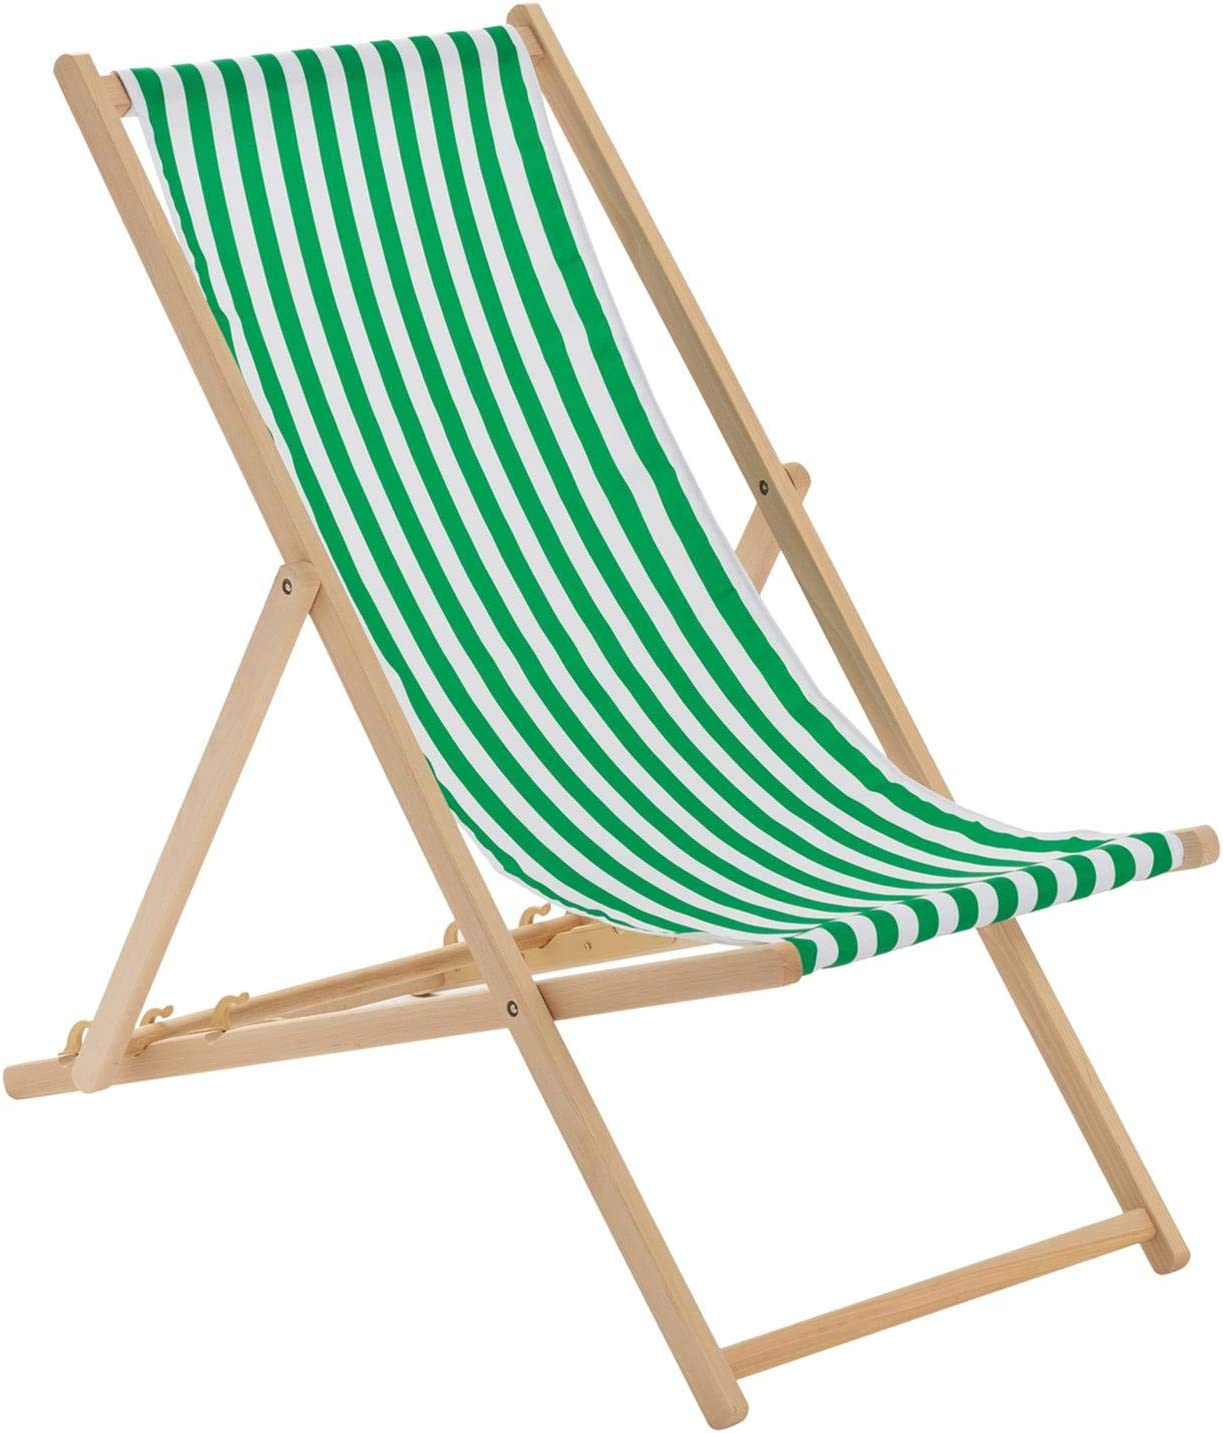 Harbour Housewares Traditional Adjustable Garden/Beach-style Deck Chair -  Green/White Stripe